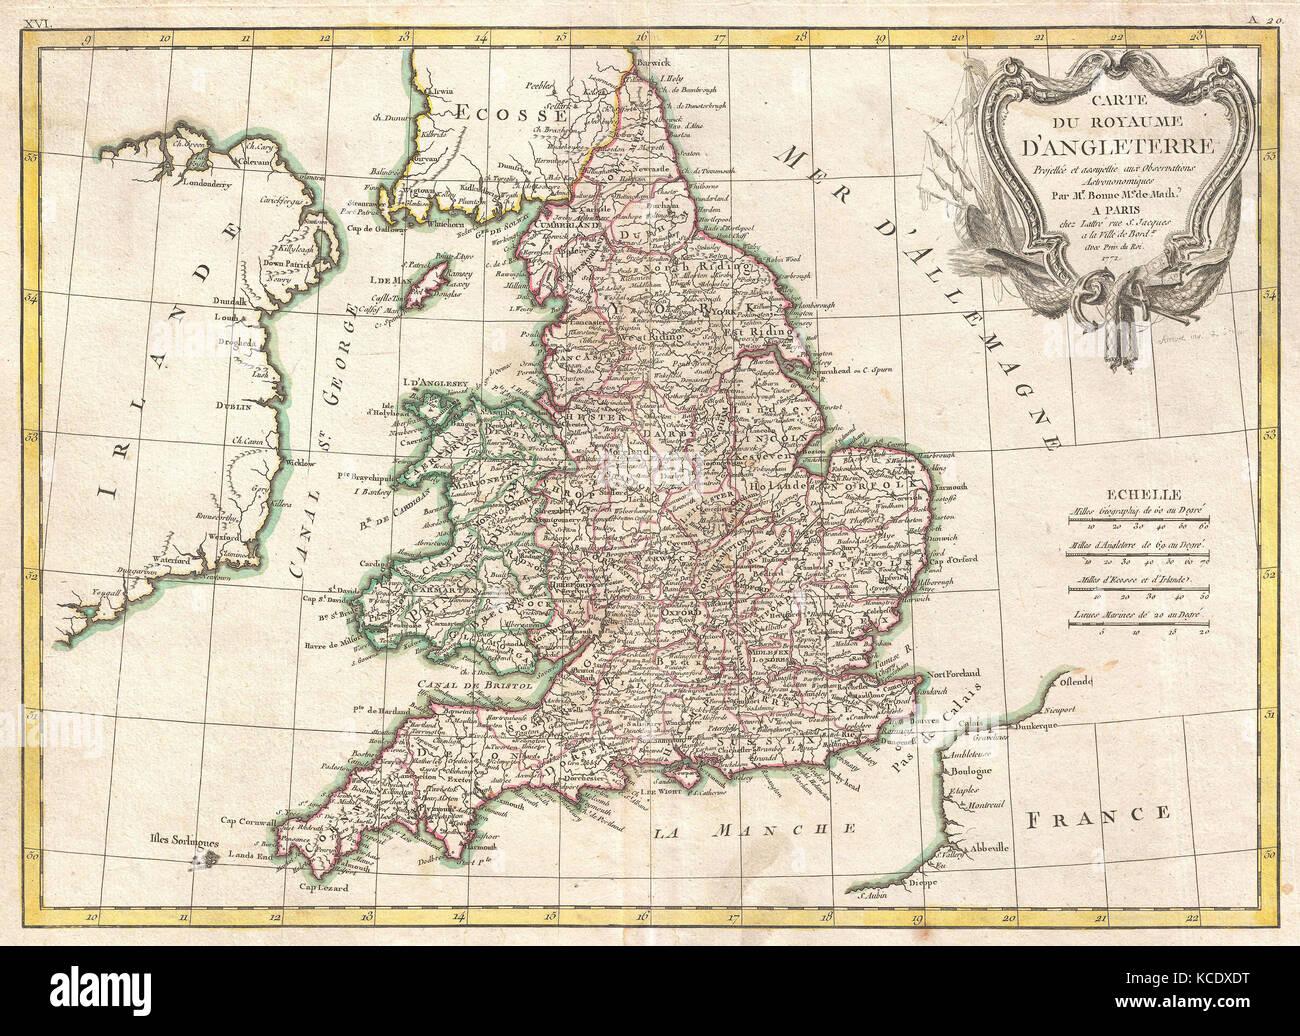 1772, Bonne Map of England and Wales, Rigobert Bonne 1727 – 1794 - Stock Image